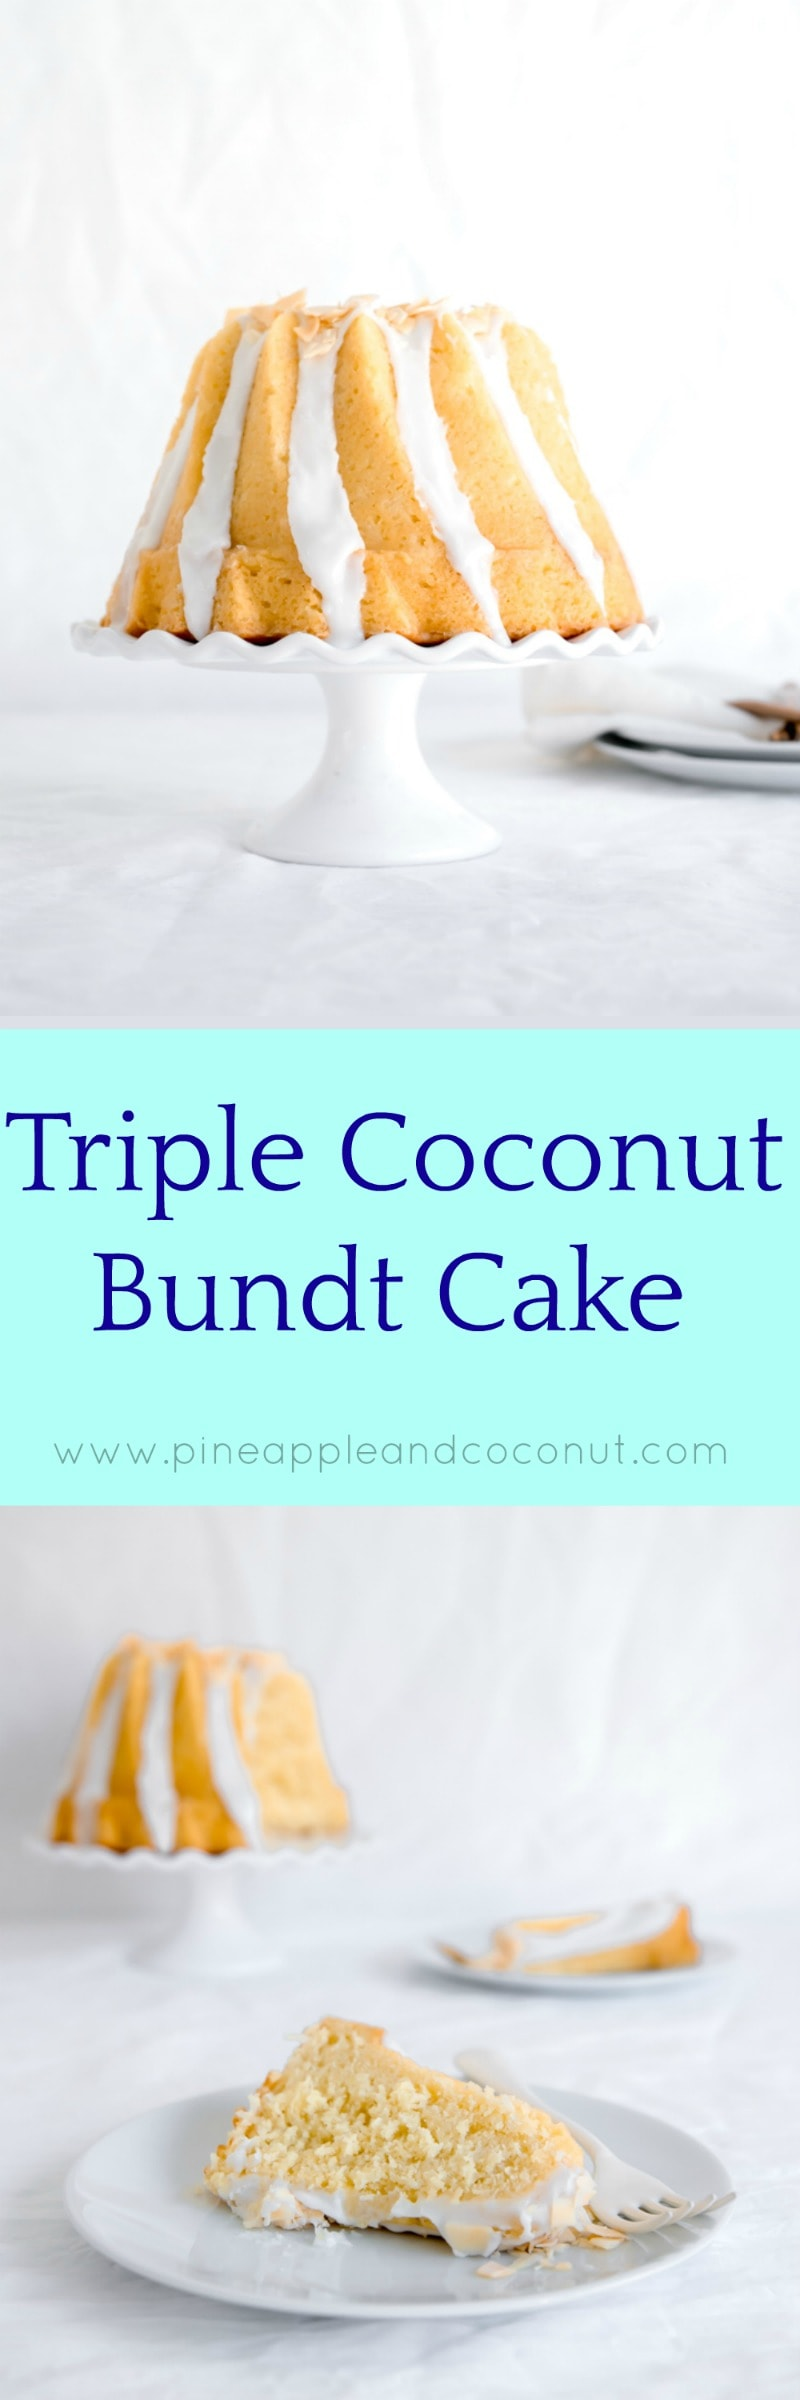 Triple Coconut Bundt Cake Pineapple And Coconut